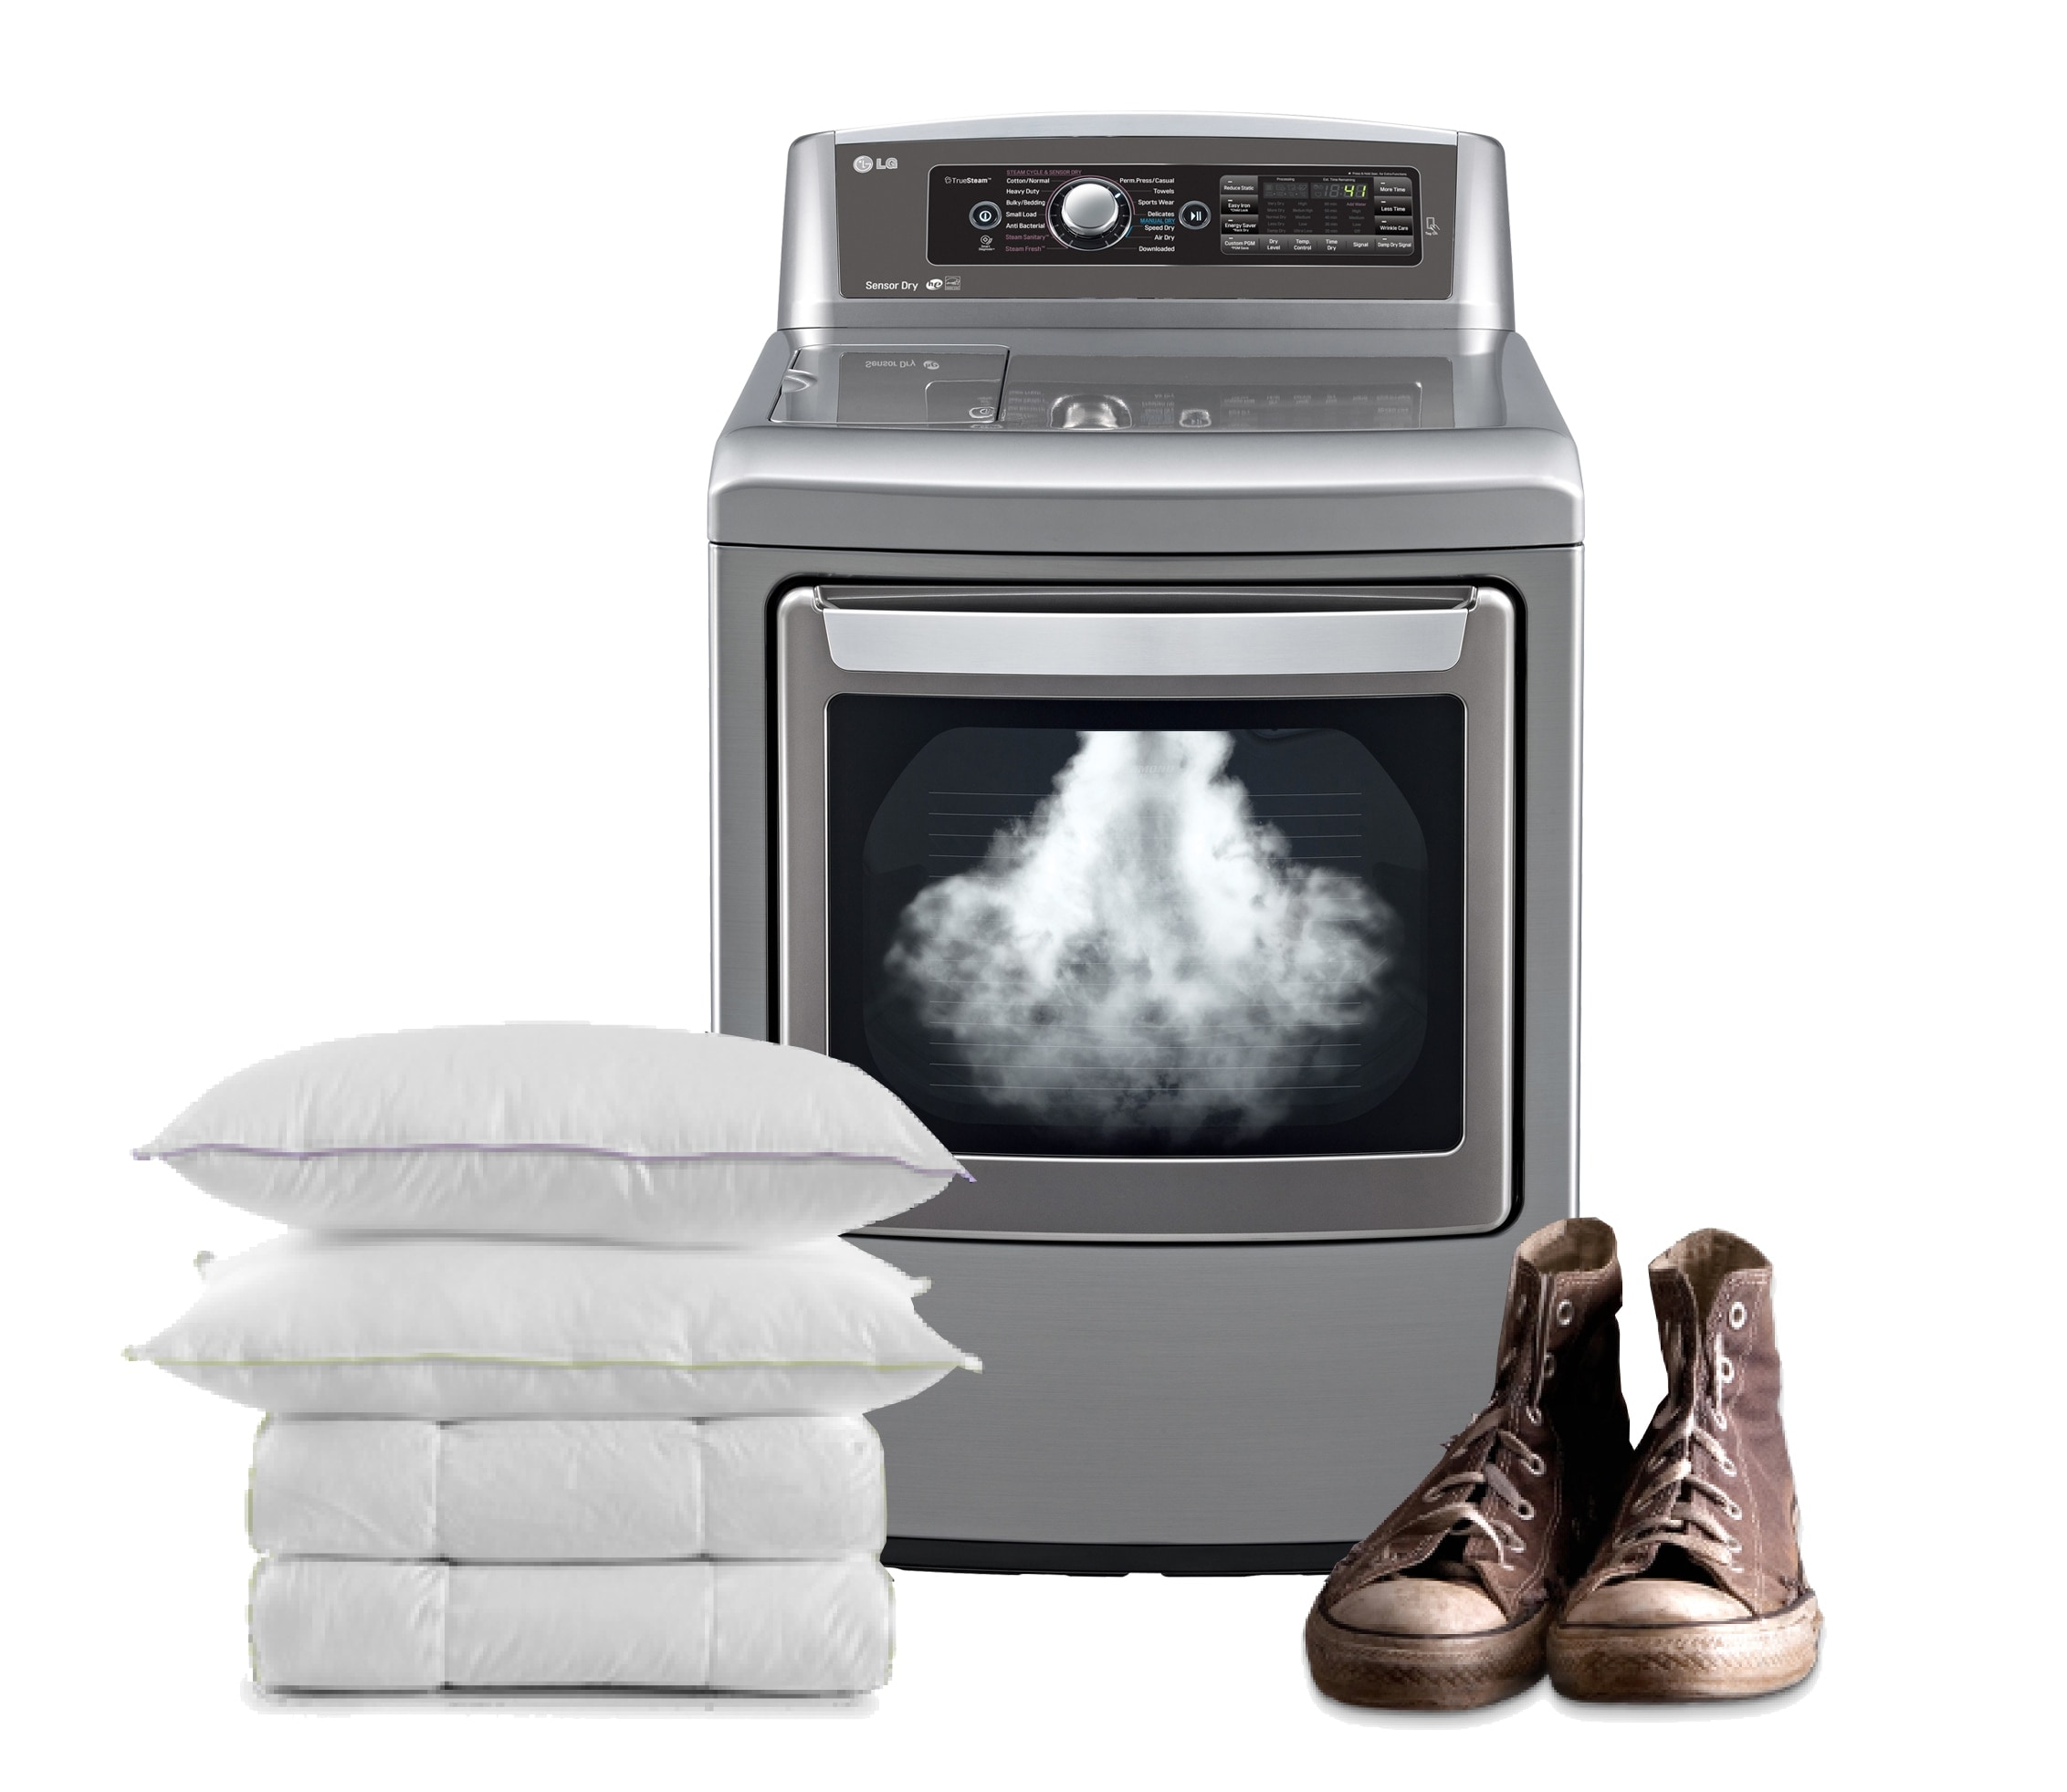 Appliances Dryers Electric Dryers Large Capacity Dryers Lg Canada